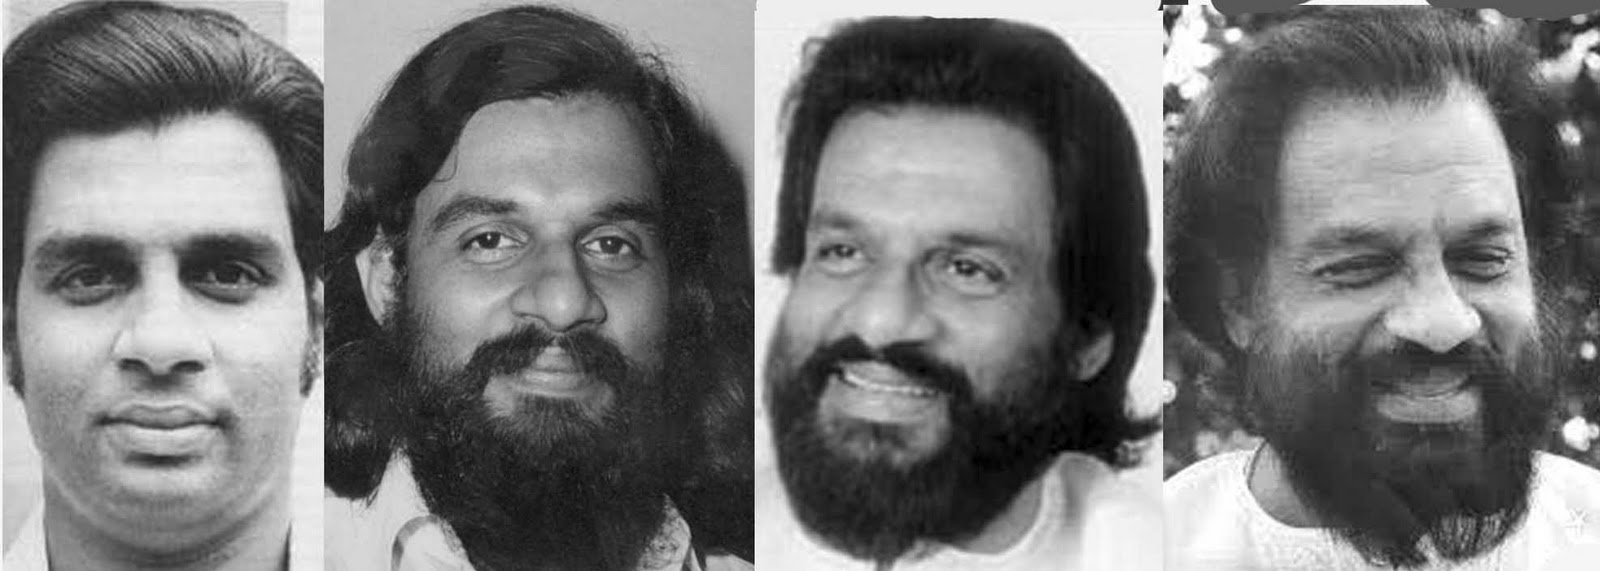 Send Us Your YESUDAS!: PLEASE SEND YOUR YESUDAS CARICATURES